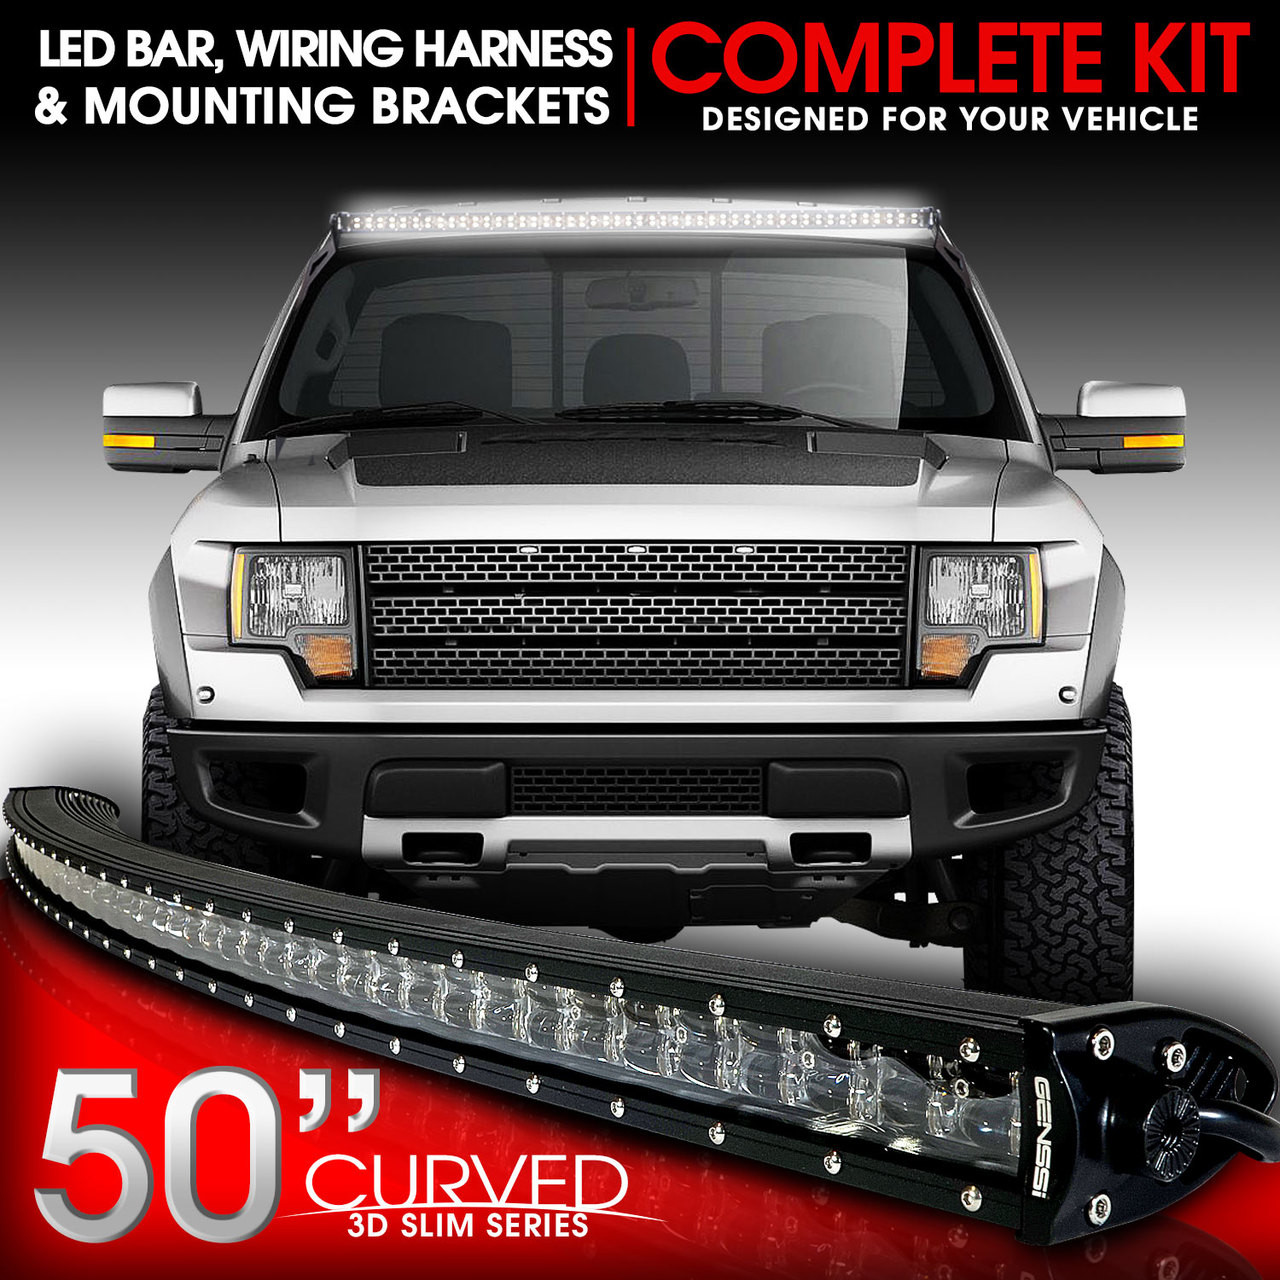 hight resolution of led light bar curved 288w 50 inches bracket wiring harness kit forled light bar curved 288w